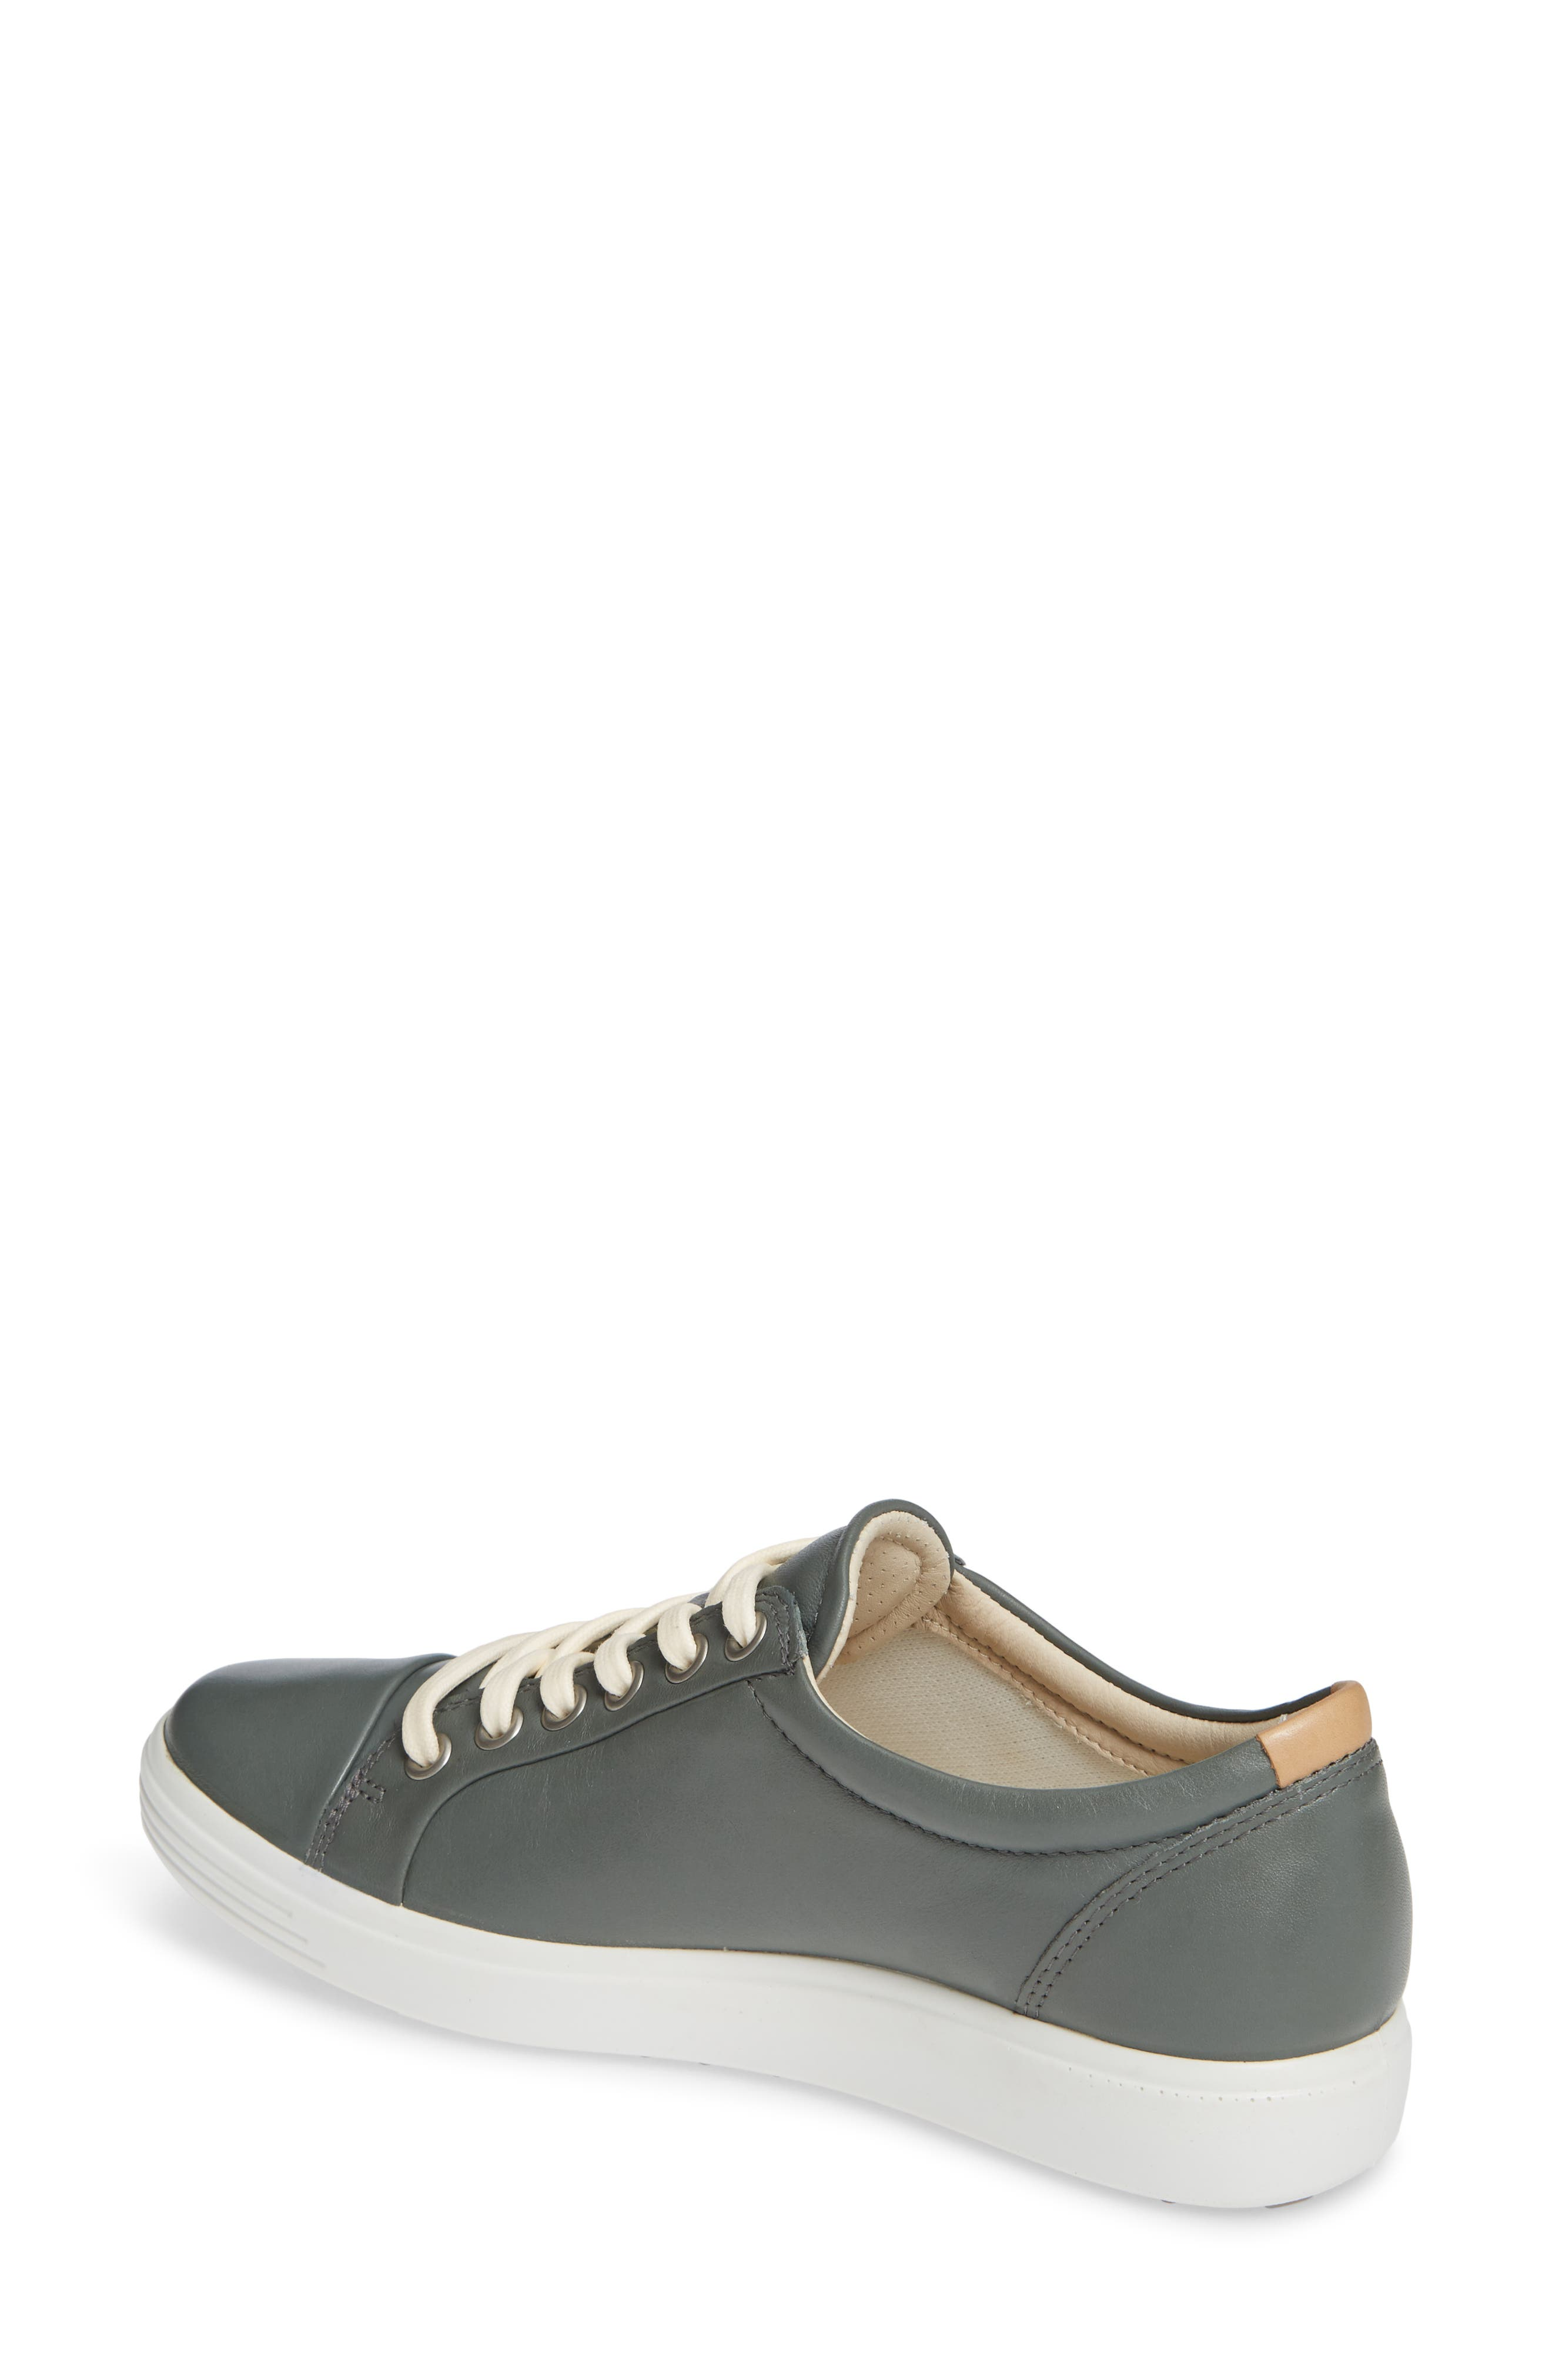 Soft 7 Sneaker,                             Alternate thumbnail 2, color,                             MOON LEATHER